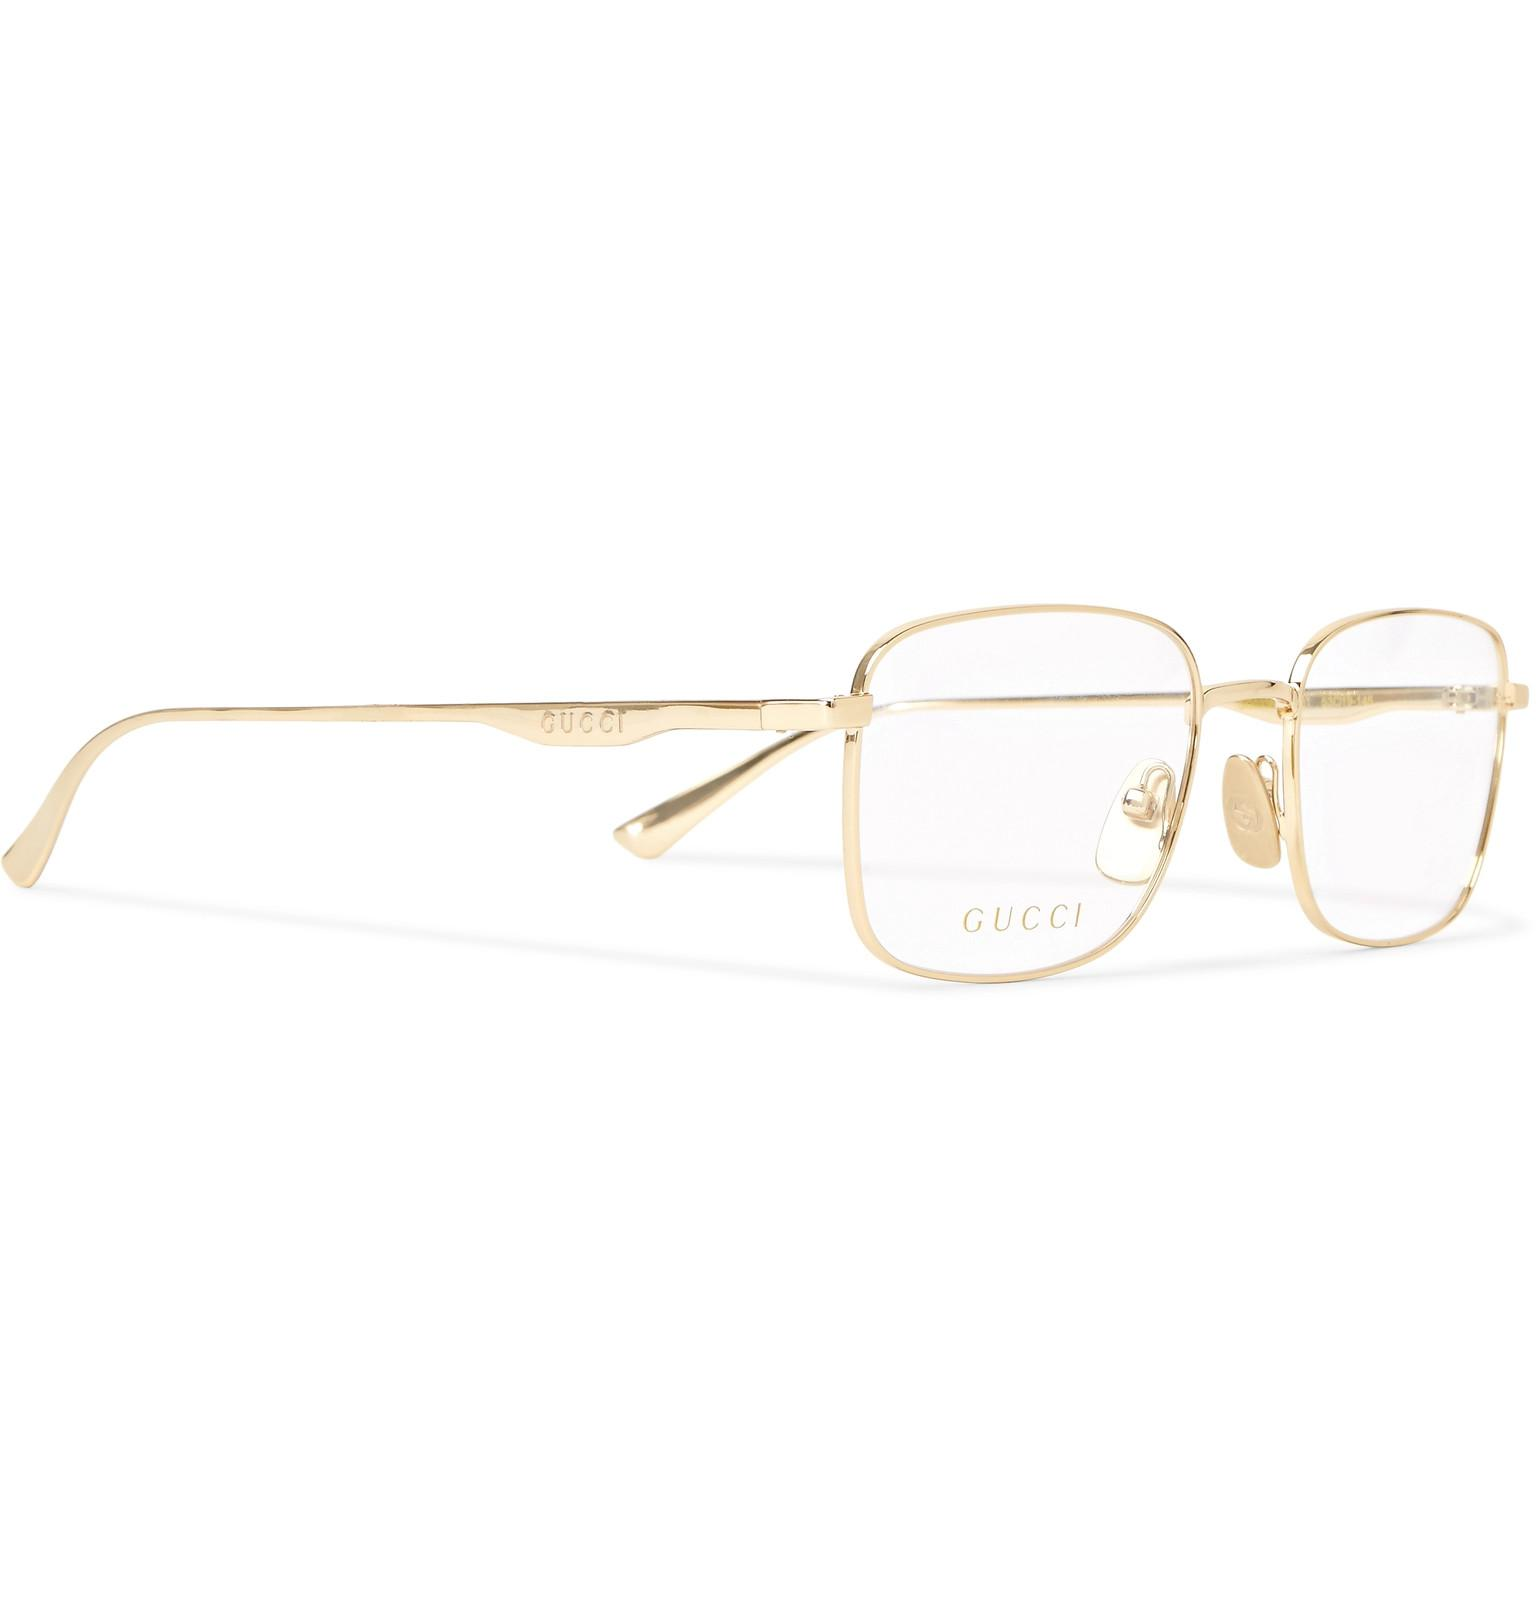 40cc8b8ef2 Lyst - Gucci Square-frame Gold-tone Optical Glasses in Metallic for Men